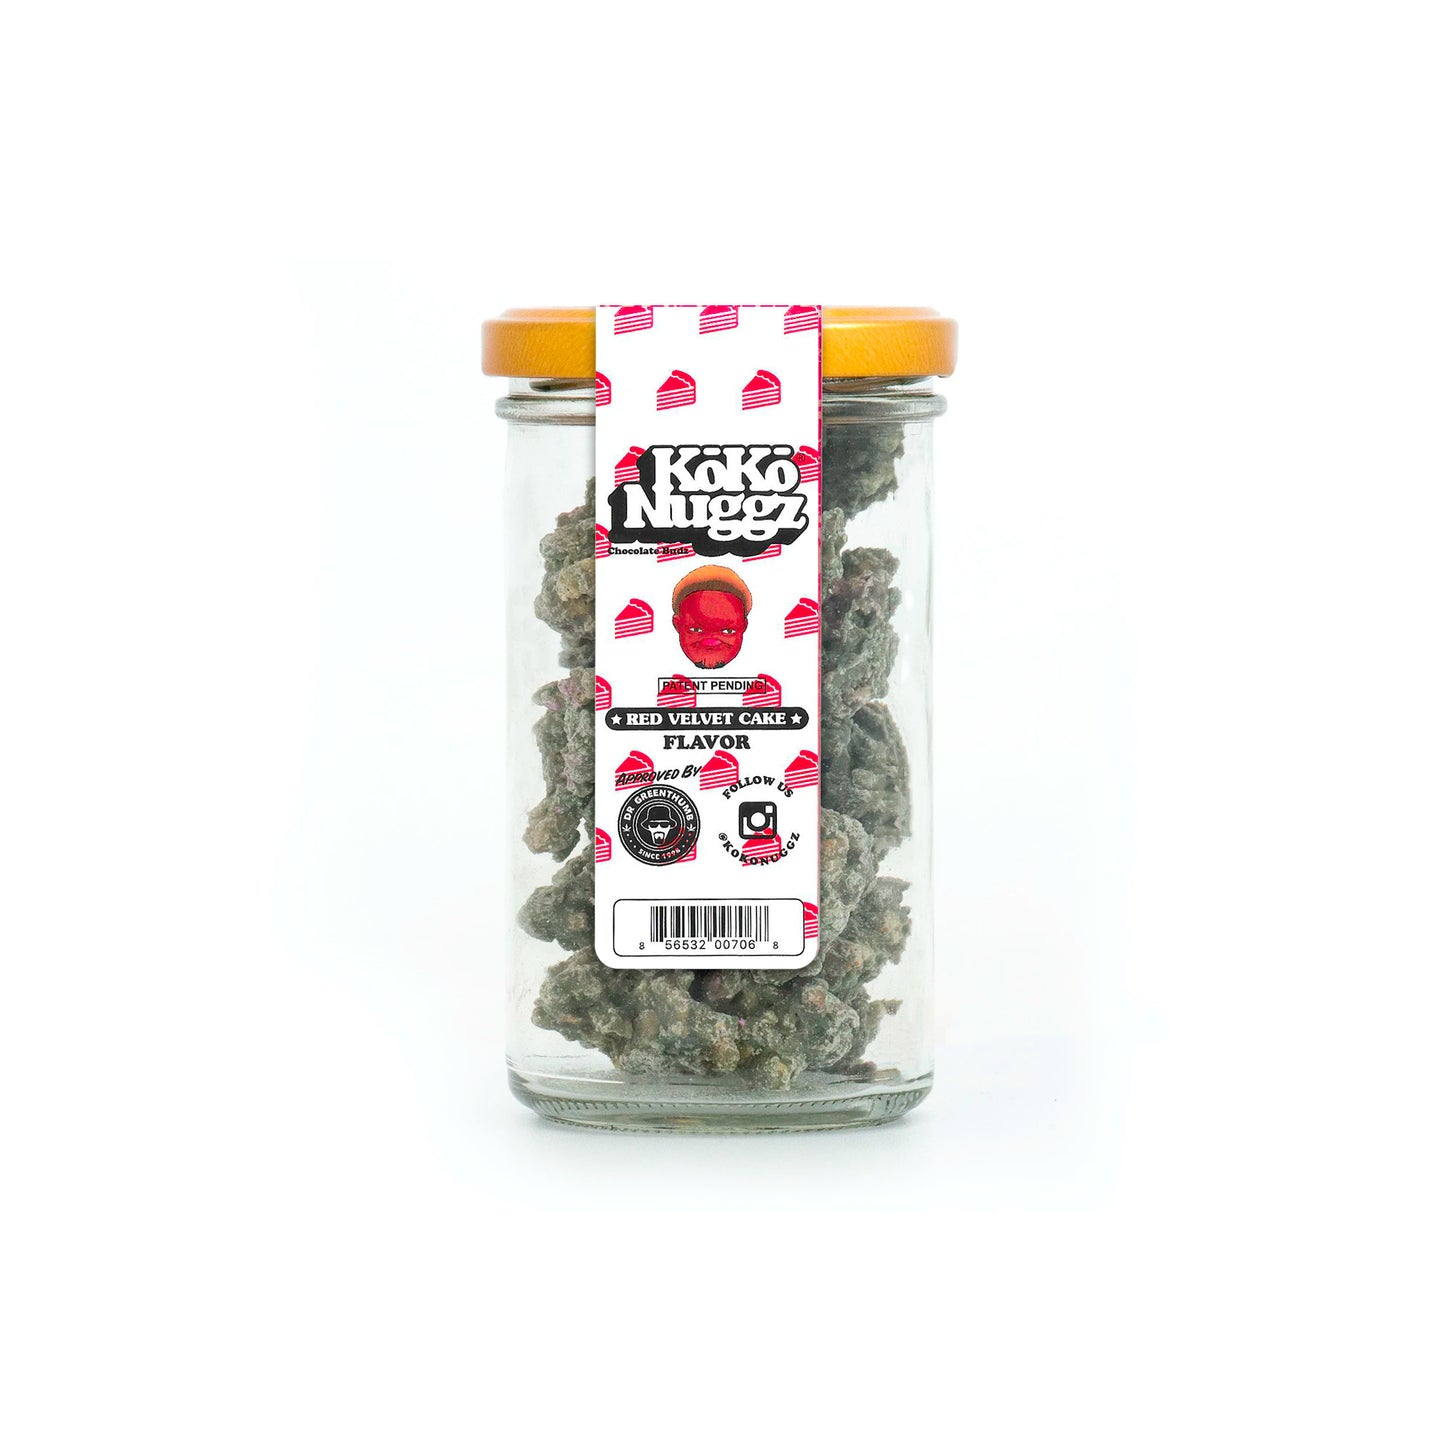 Holygxd Red Velvet Cake 2.25oz - Koko Nuggz Europe